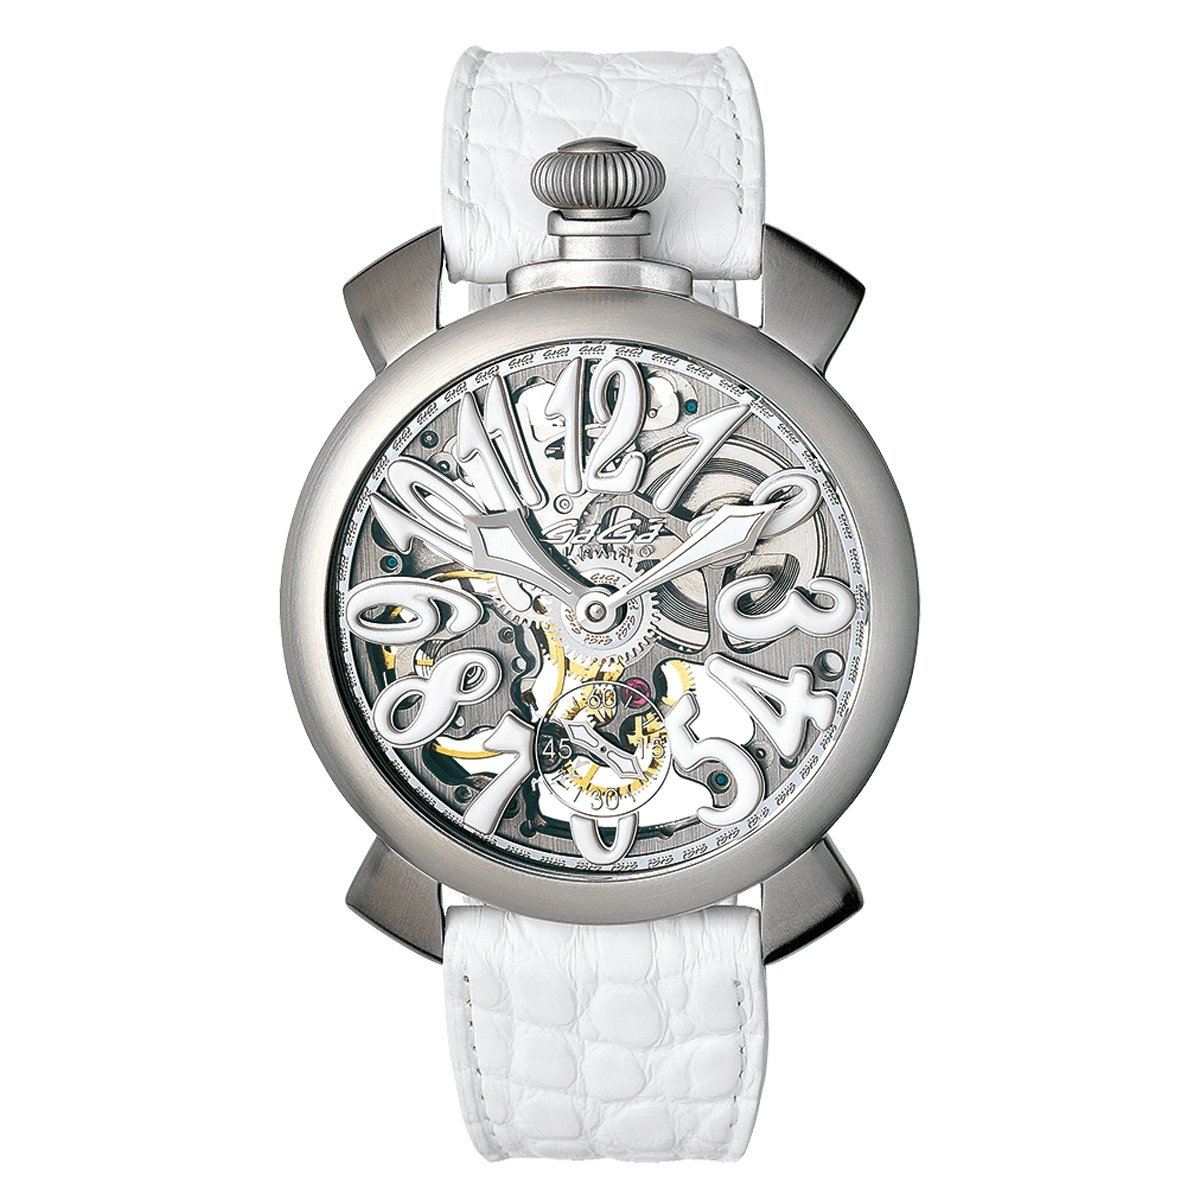 GaGà Milano Skeleton 48MM Satin - Watches & Crystals